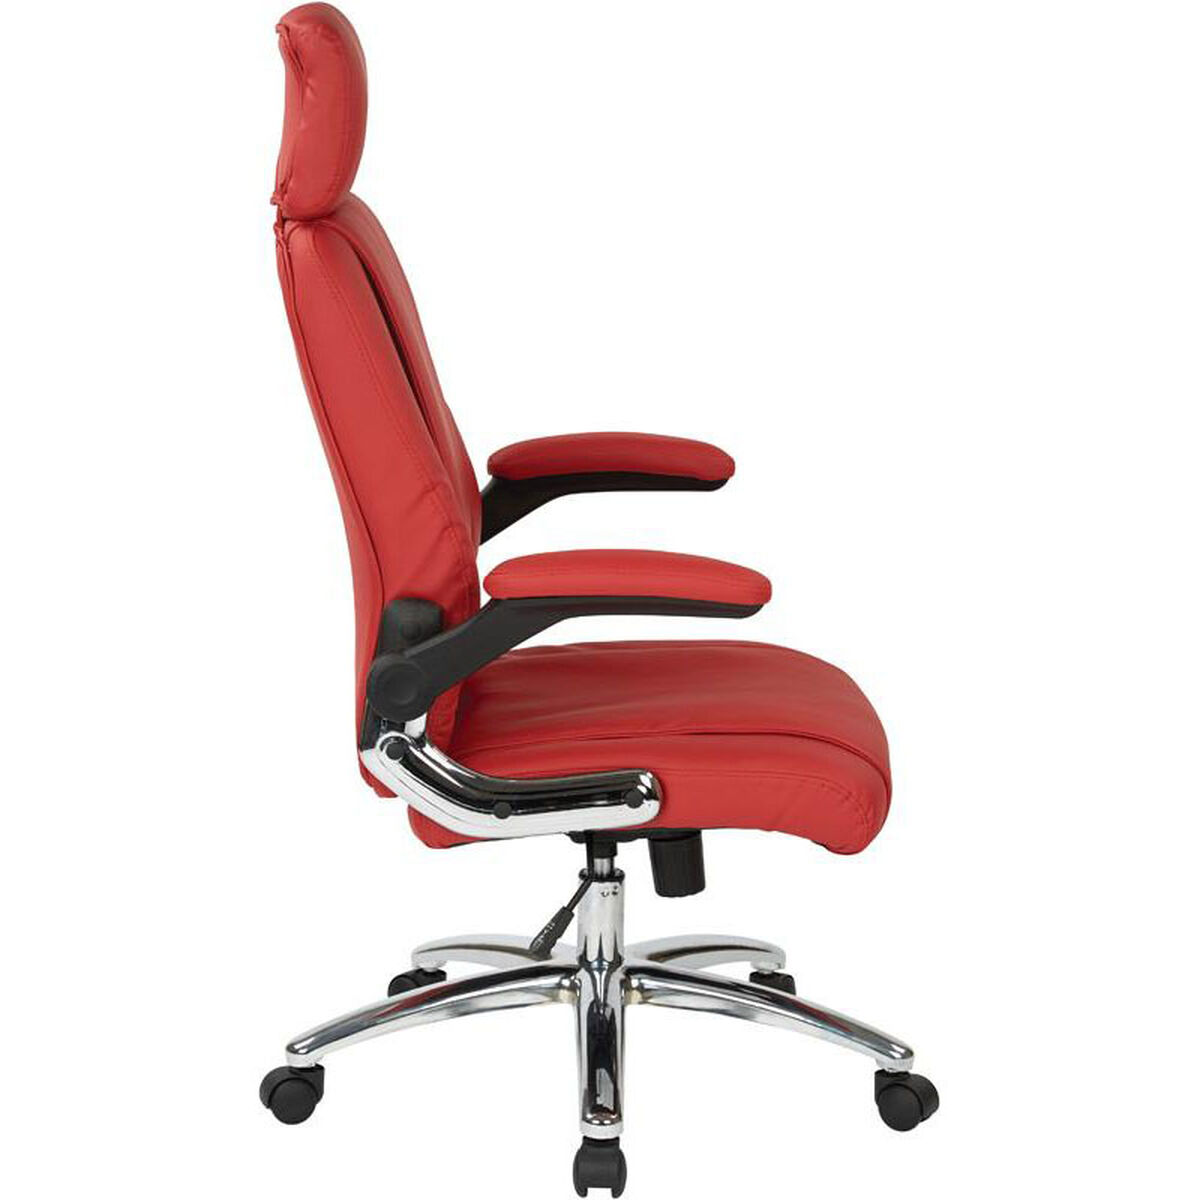 Our Work Smart Executive Faux Leather Office Chair With Chrome Metal Base Red Is On